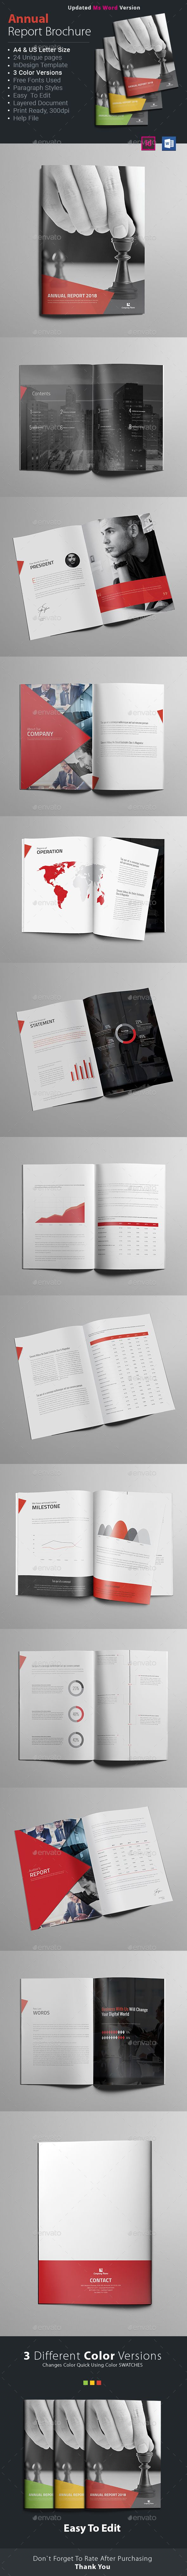 Annual Report Word Annual Report InDesign Template  Want to show your company's activities & financial performances throughout the year to your shareholders & interested people?  This 24 Page Professional and Corporate Annual Report Template is the best suitable for your company.